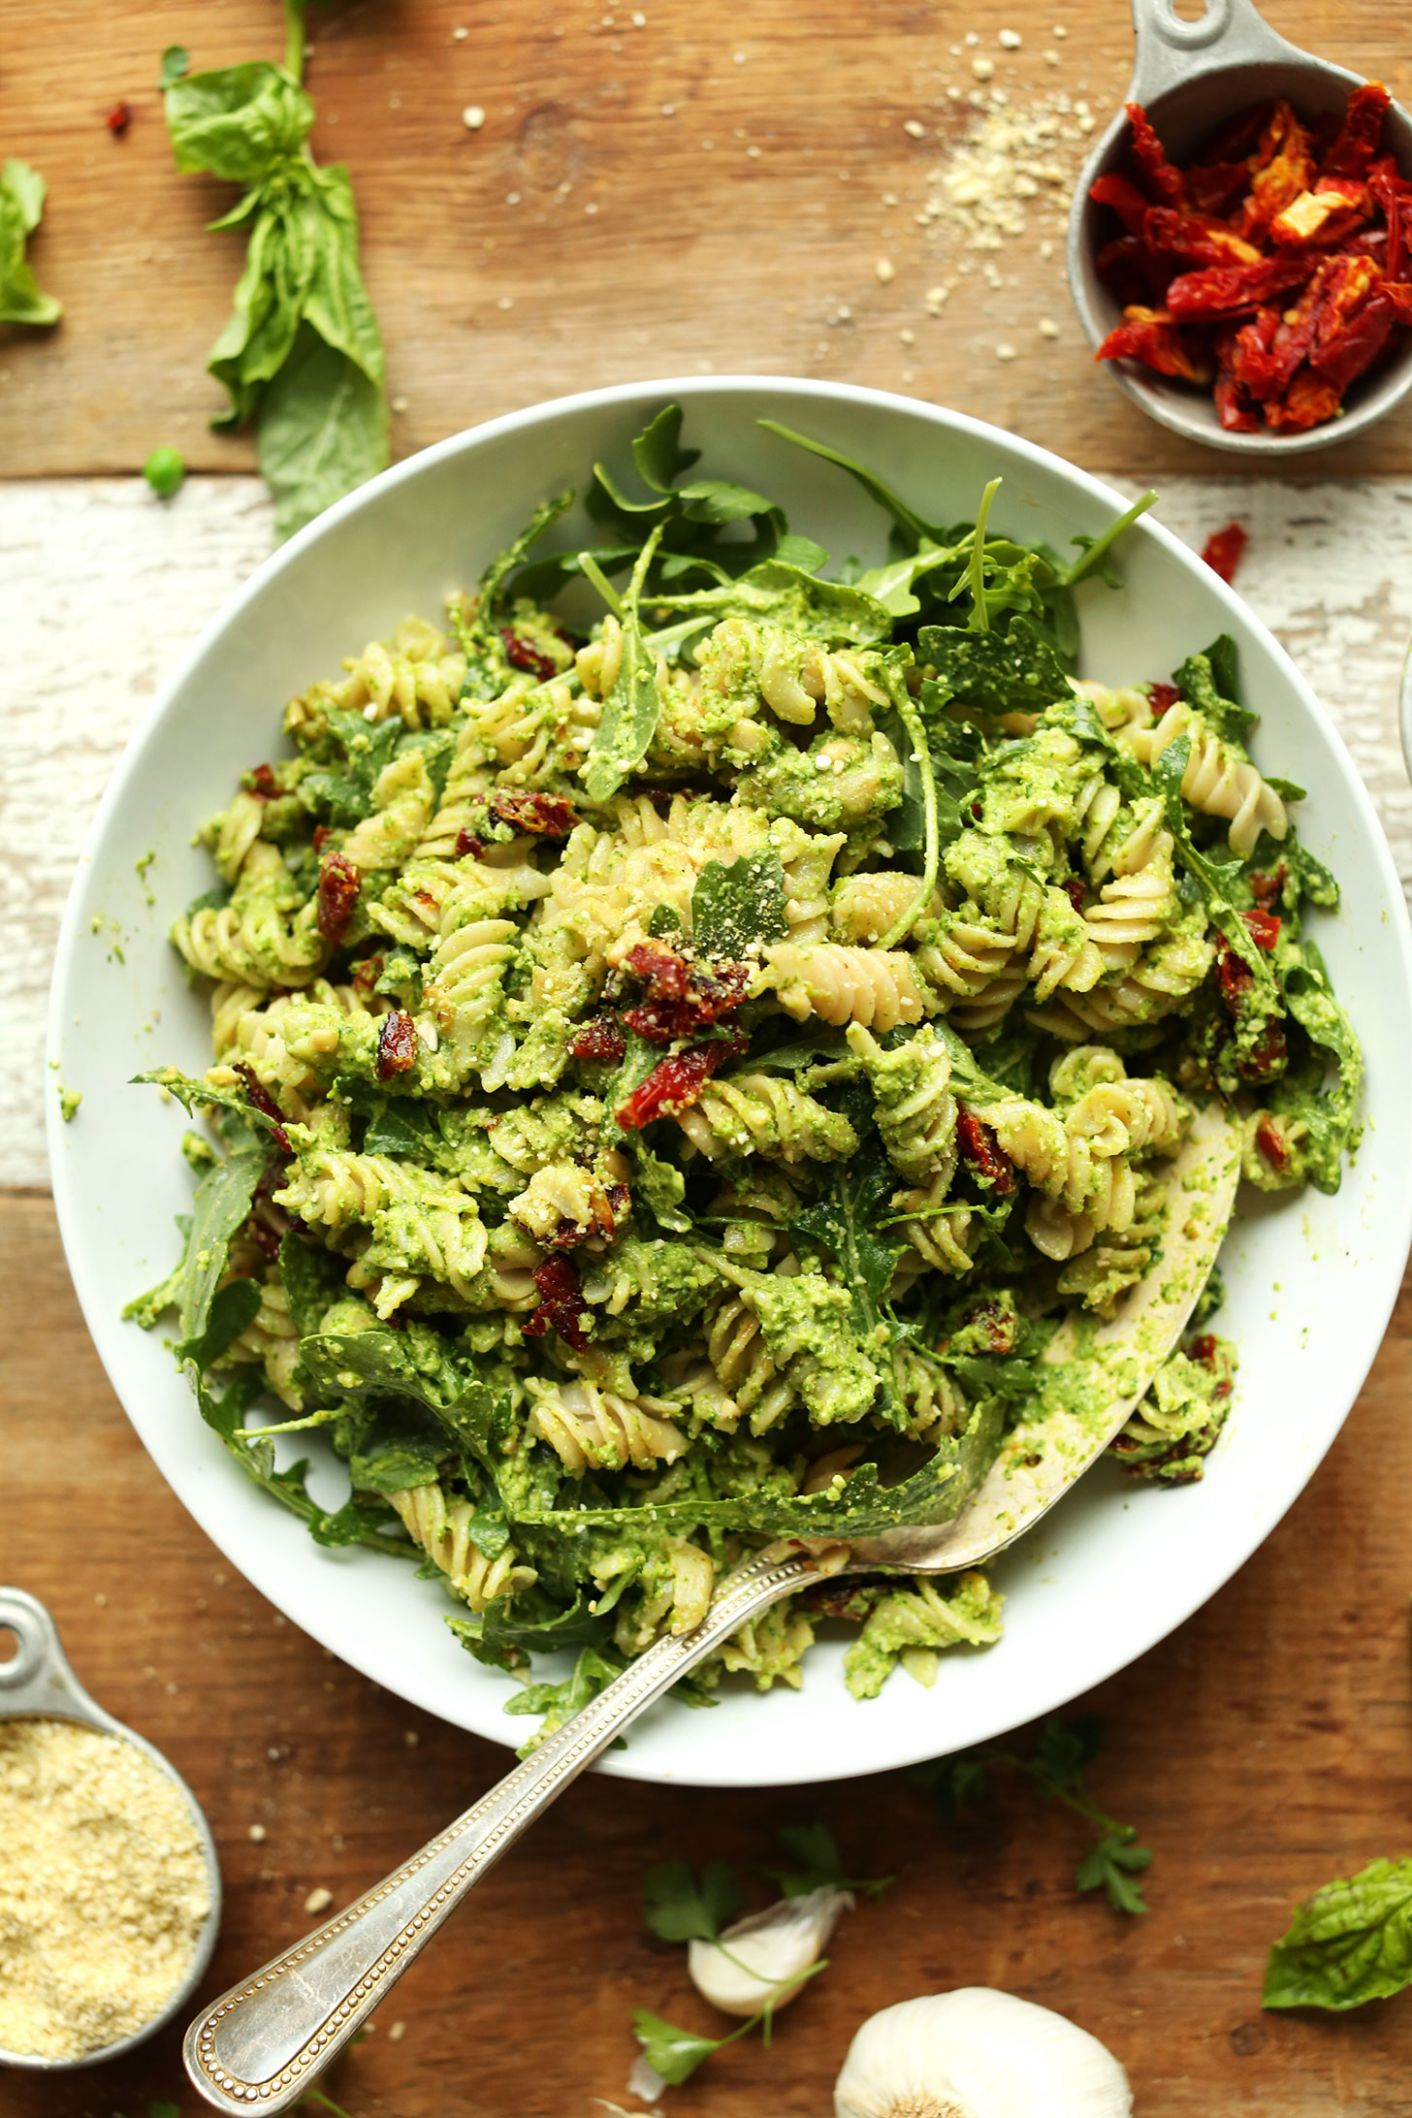 Pea Pesto Pasta with Sun-Dried Tomatoes & Arugula (Vegan + GF) - Recipes Pasta Pesto